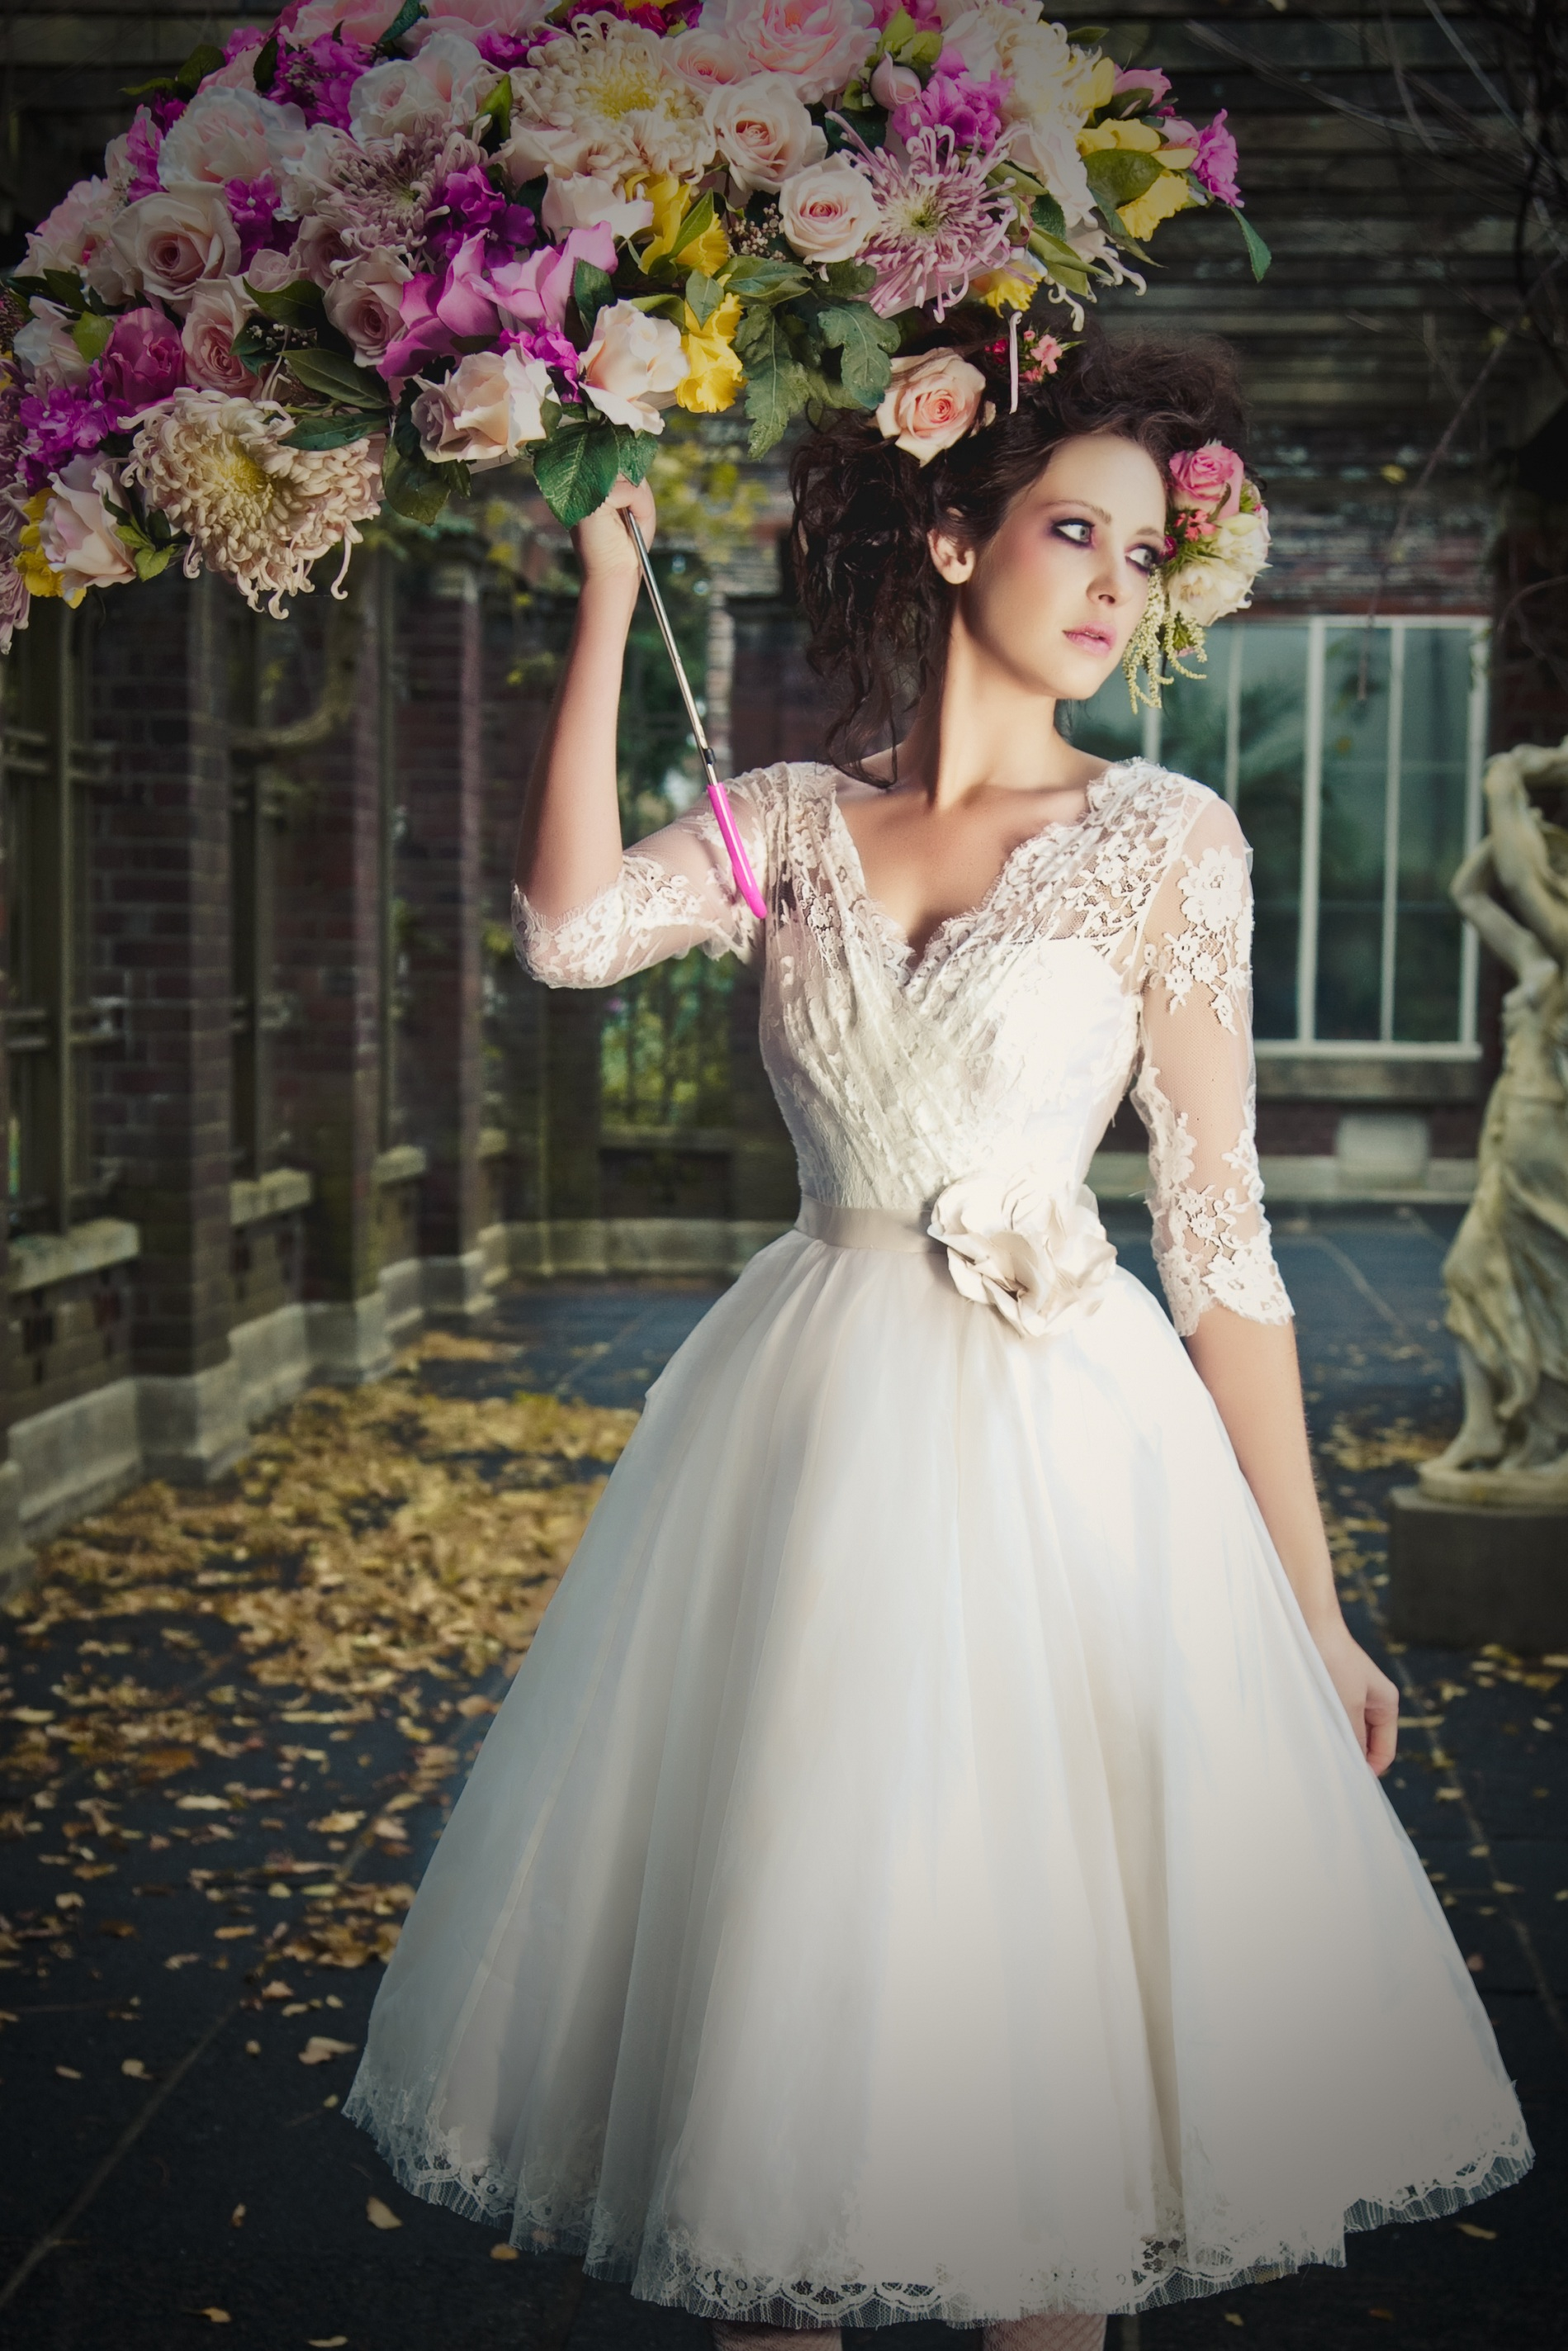 Immortal Beloved Inspiration Shoot by Primrose & Finch